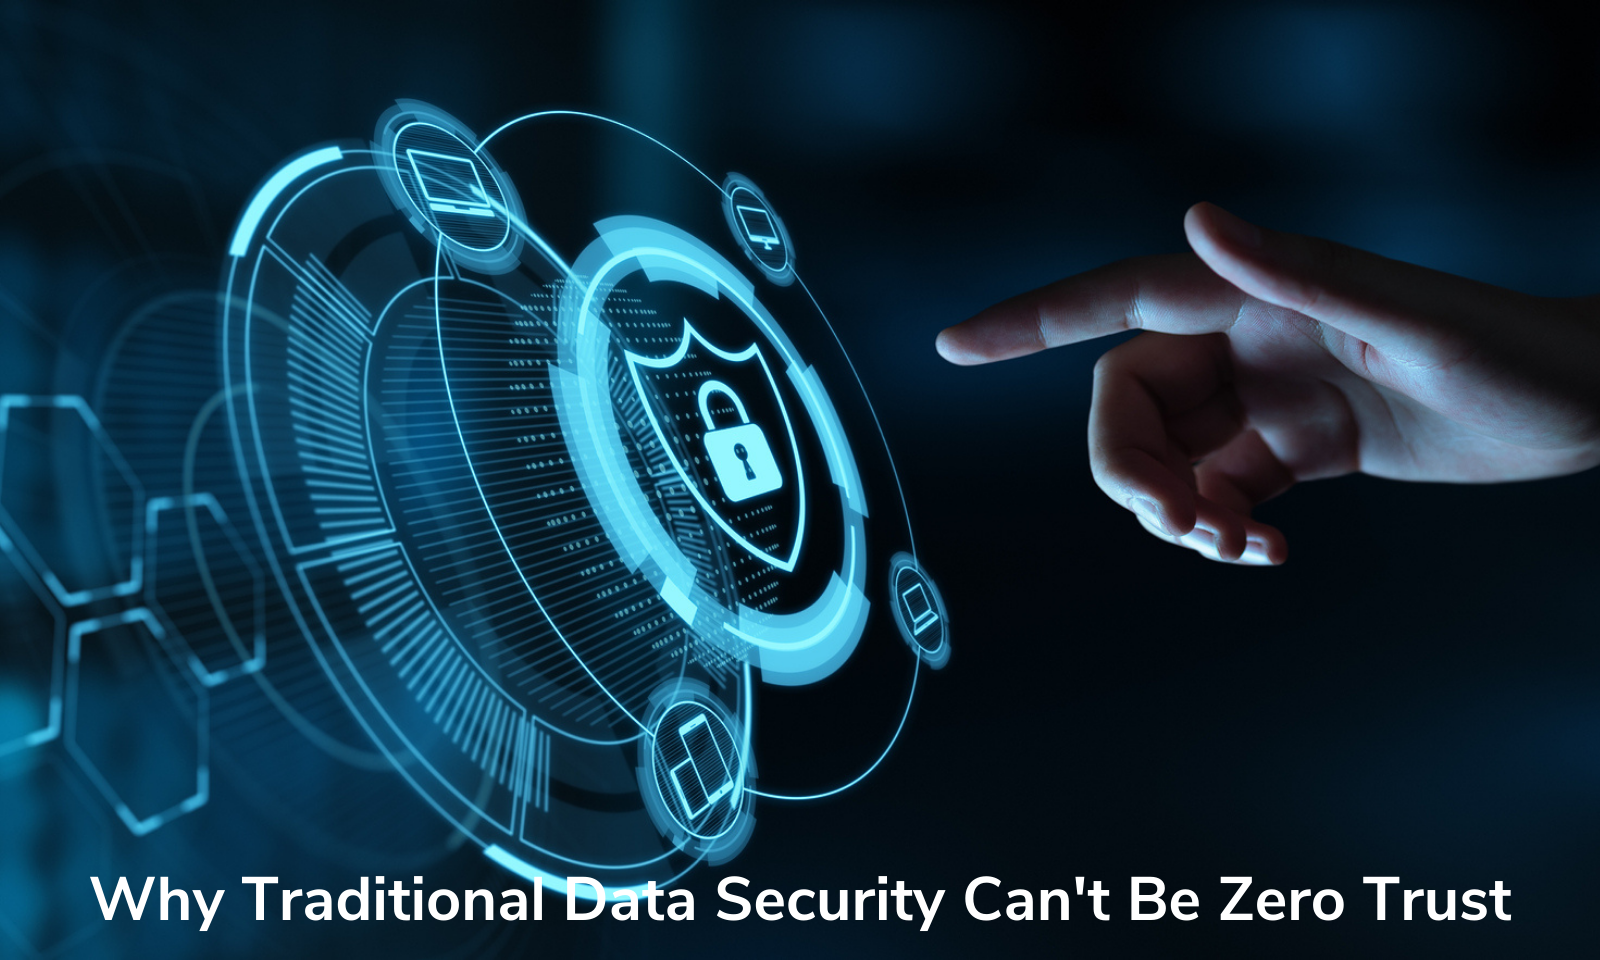 Why Traditional Data Security Can't Be Zero Trust